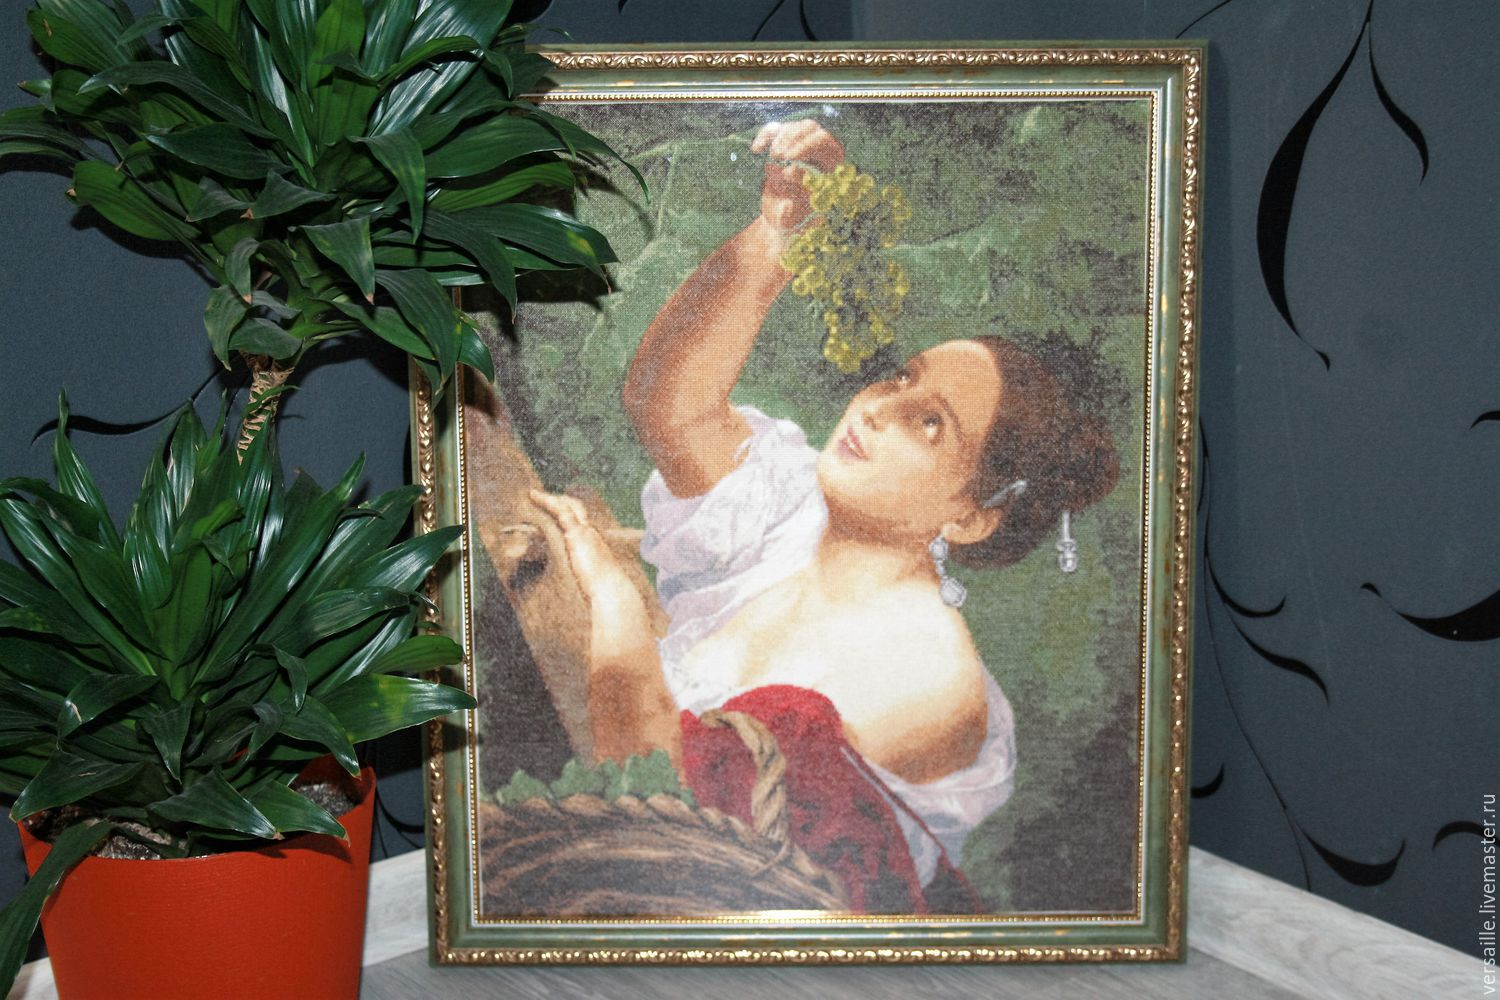 Reproduction, embroidered pattern,the big picture, a copy, a masterpiece of world painting, copy painting